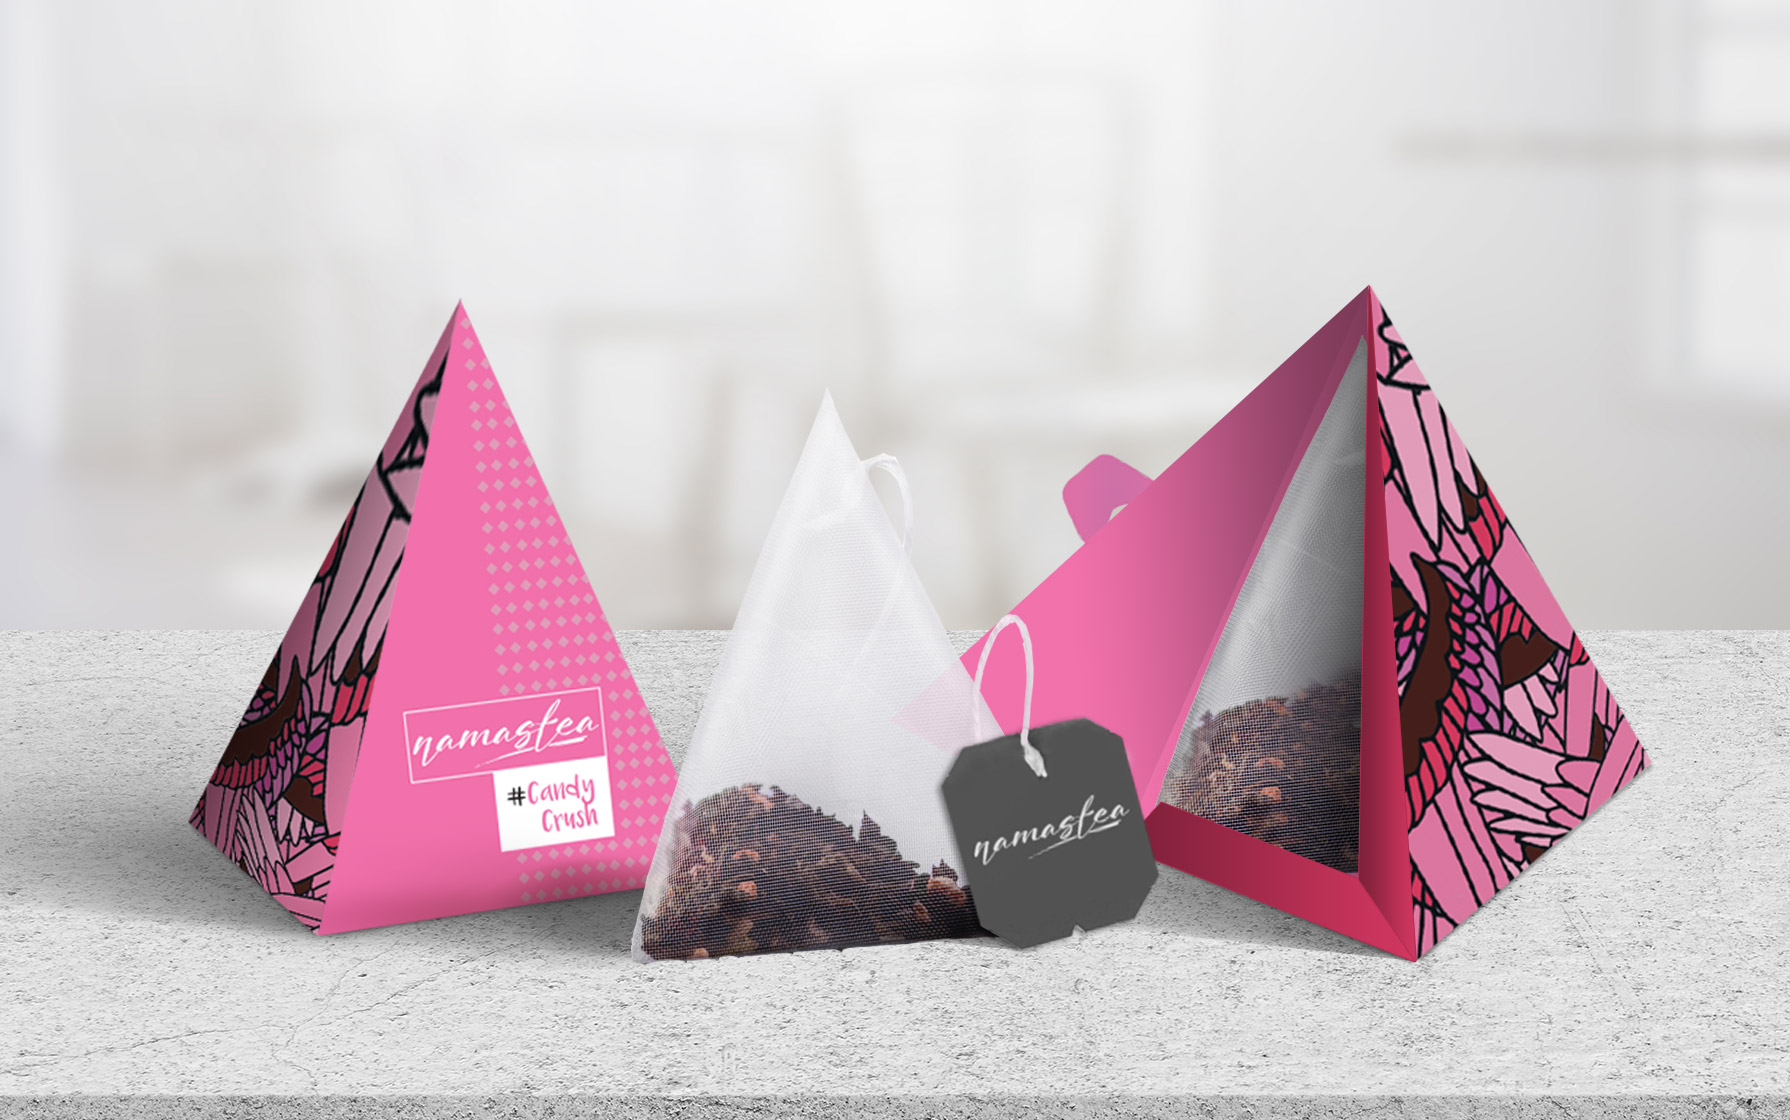 triangular tea packaging design